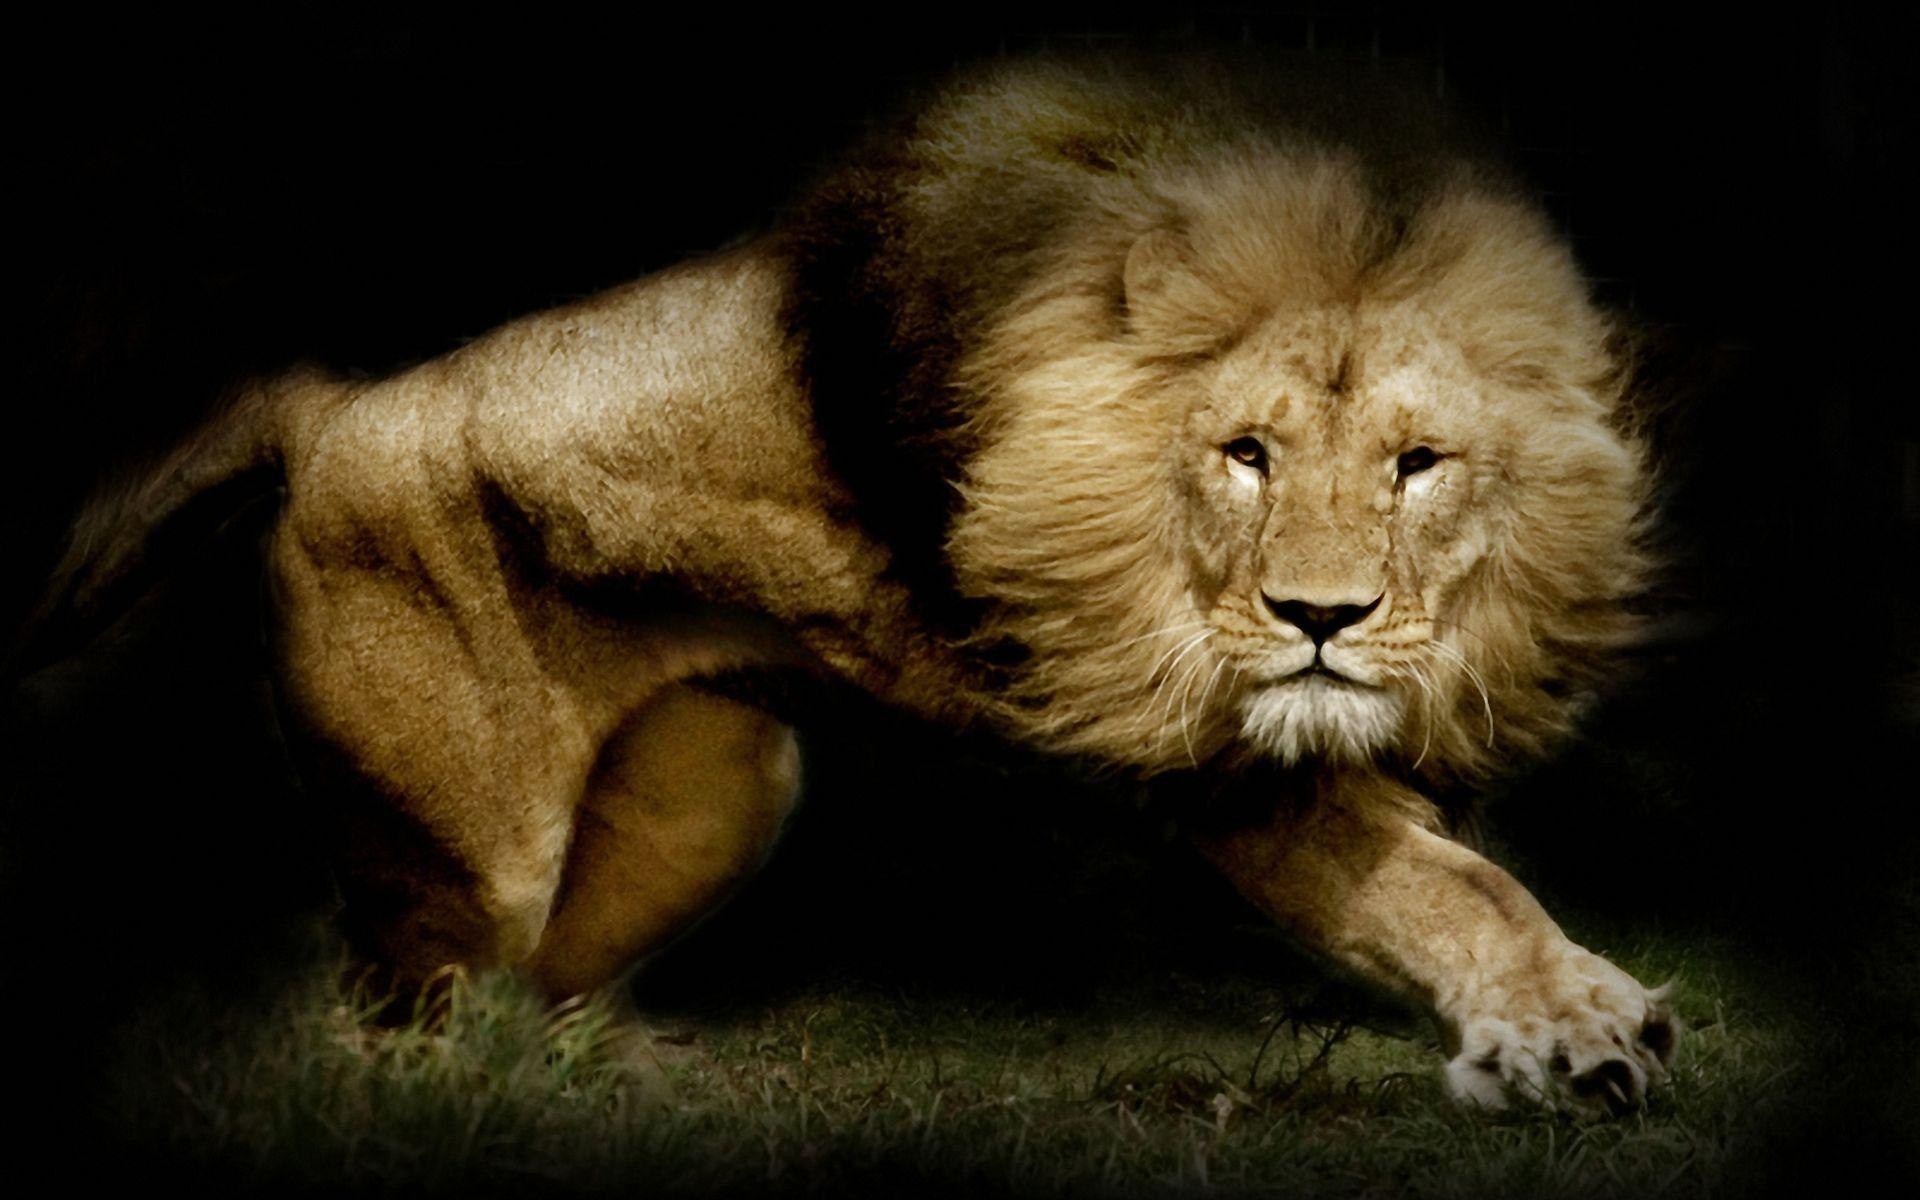 Lion Computer Wallpapers, Desktop Backgrounds 1920x1200 Id: 322877